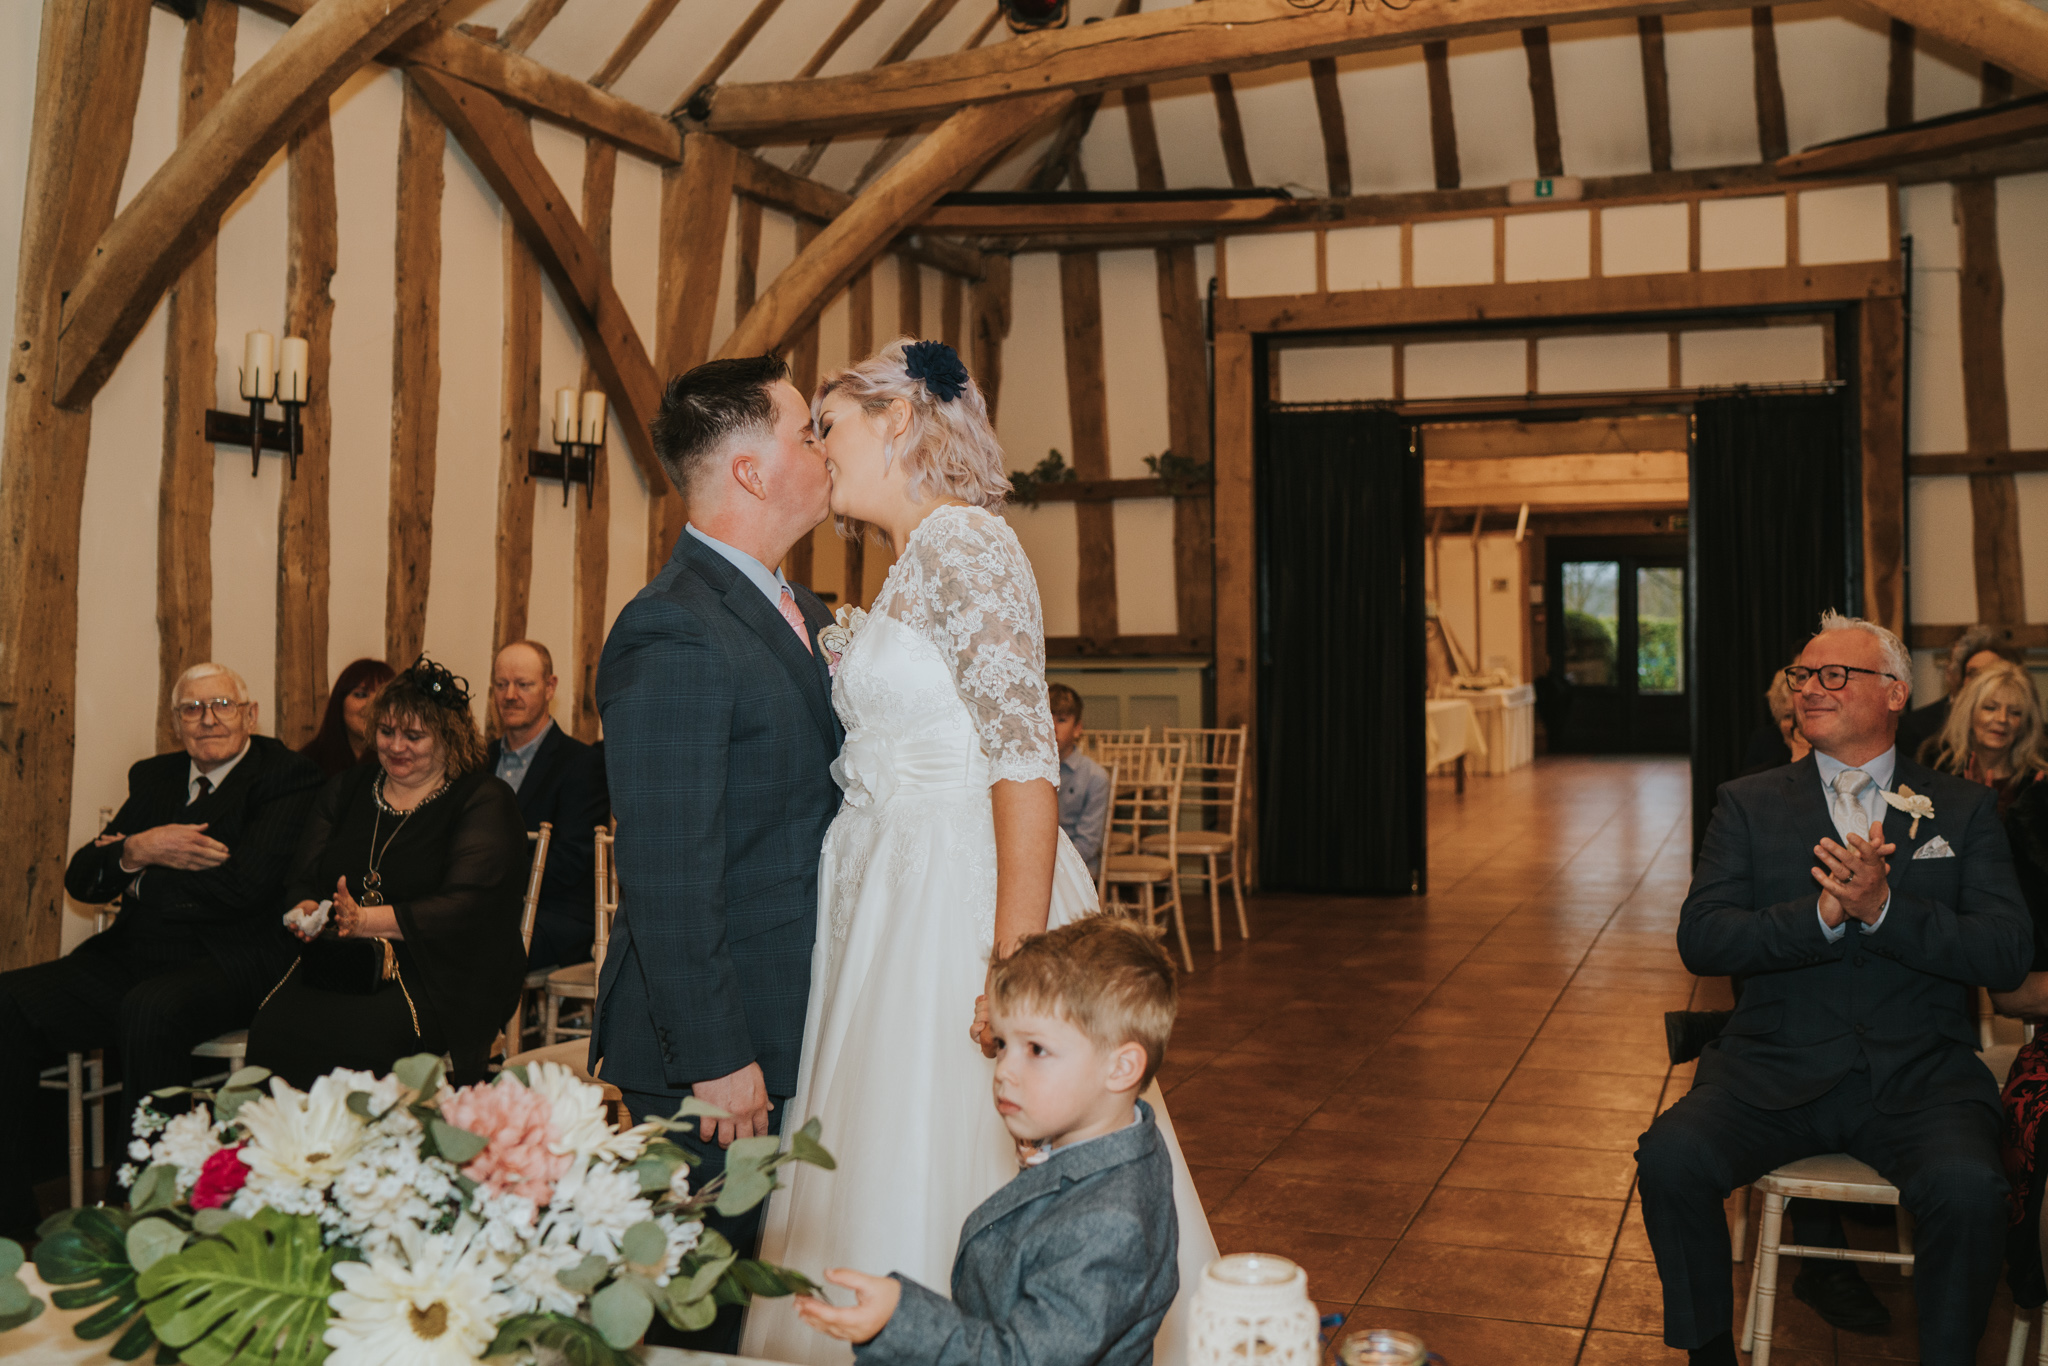 rhia-james-rustic-crabbs-barn-vintage-50s-retro-wedding-grace-elizabeth-colchester-essex-alternative-relaxed-wedding-family-photography-devon-suffolk-norfolk-essex (78 of 138).jpg